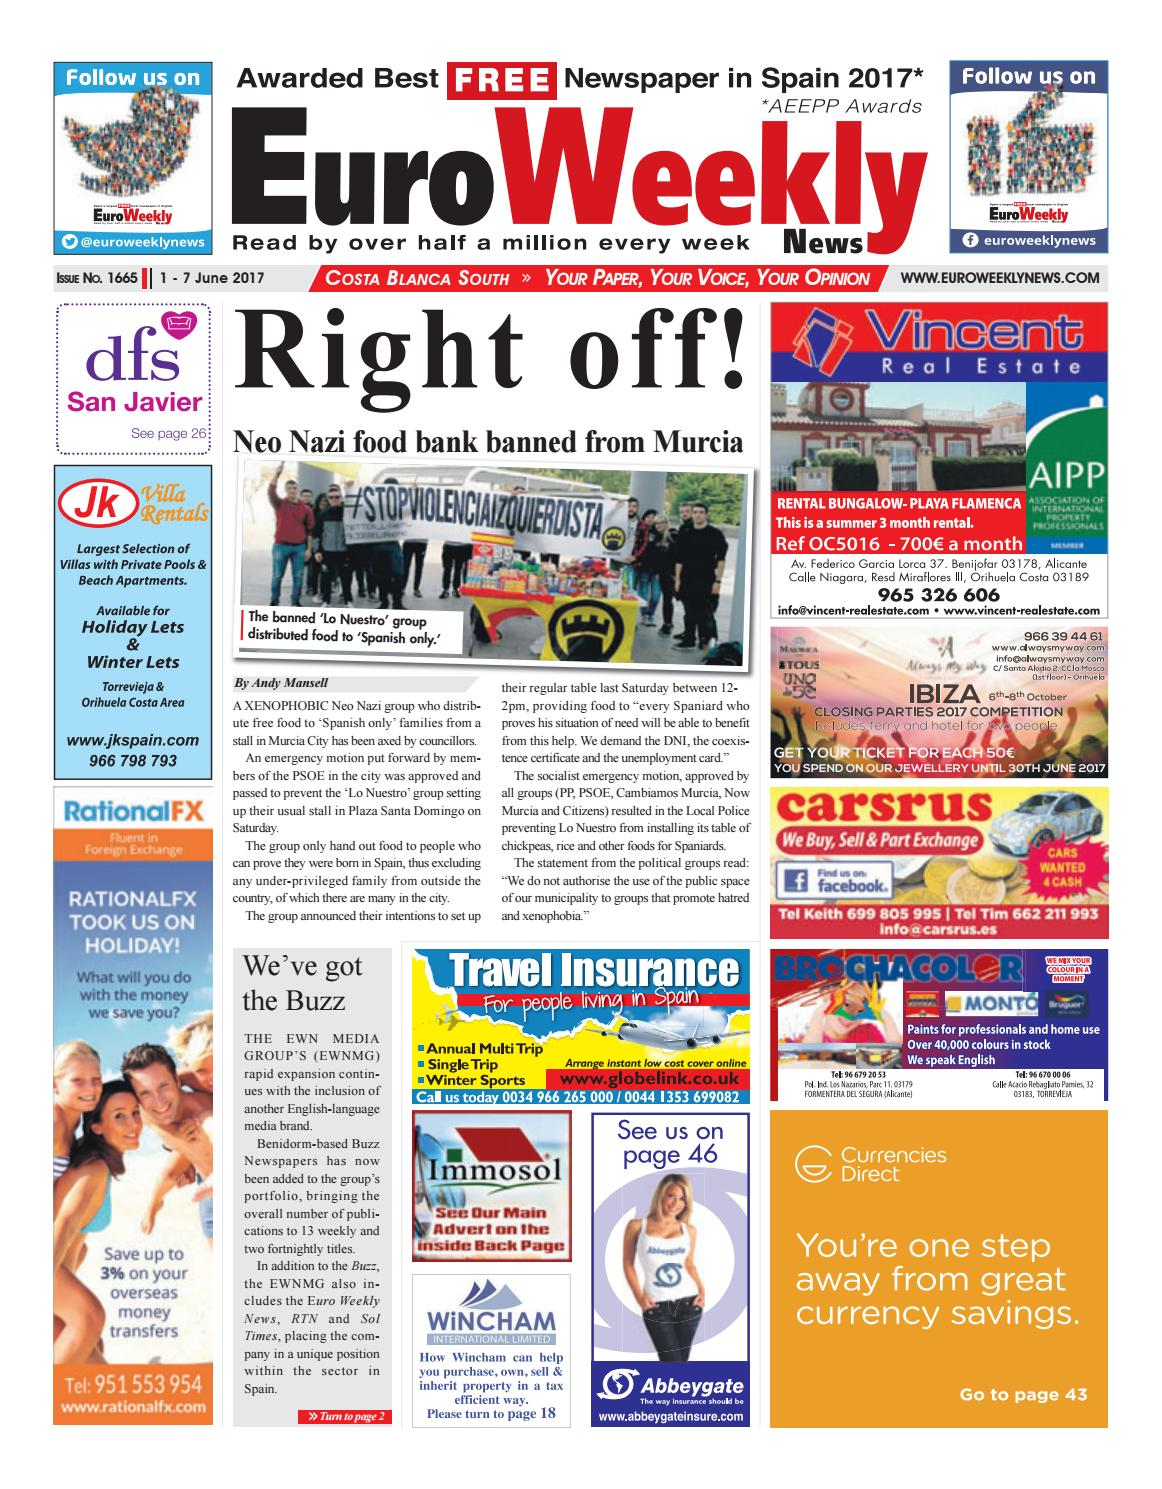 Euro weekly news costa blanca south 1 7 june 2017 issue 1665 by euro weekly news costa blanca south 1 7 june 2017 issue 1665 by euro weekly news media sa issuu fandeluxe Gallery